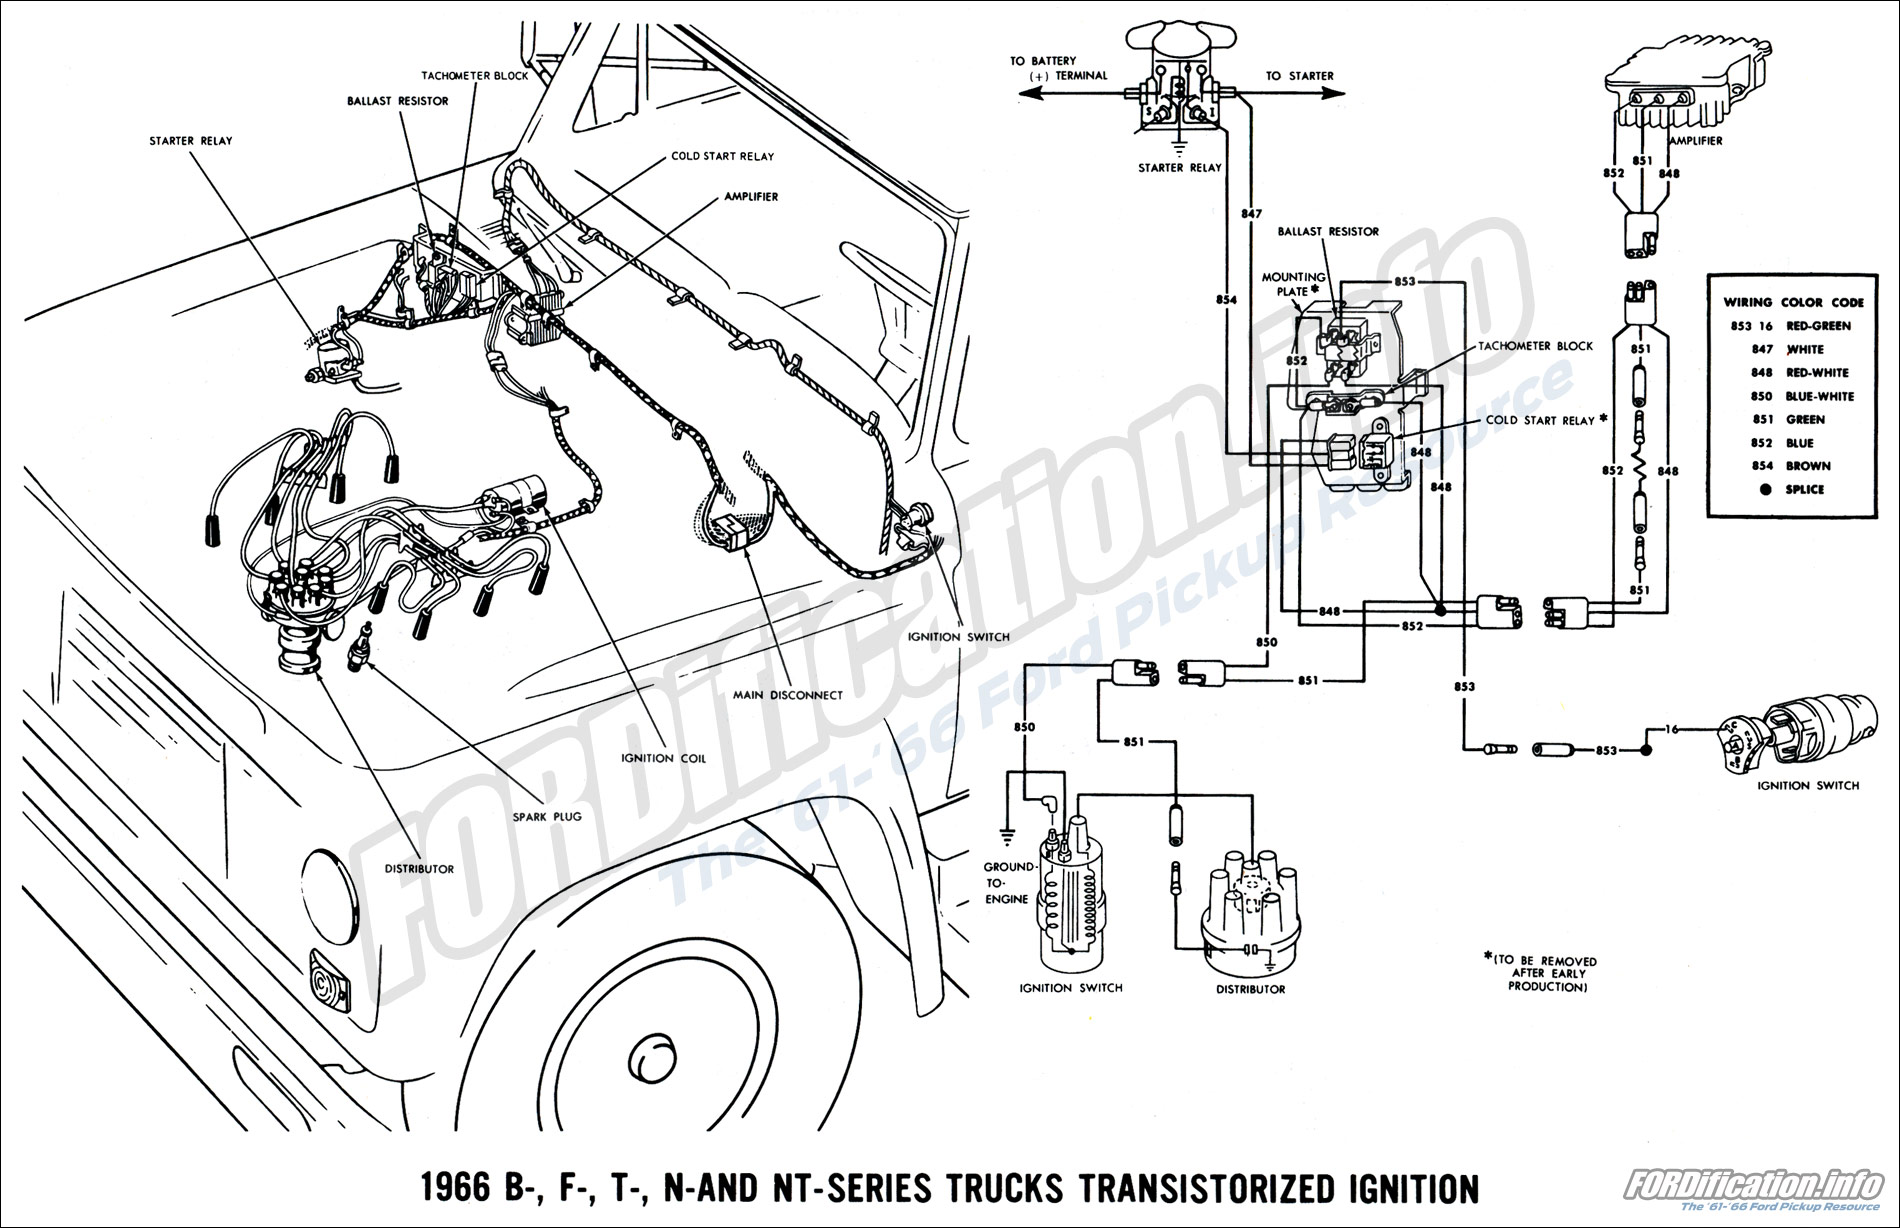 1966 ford f100 wiring diagram book covers